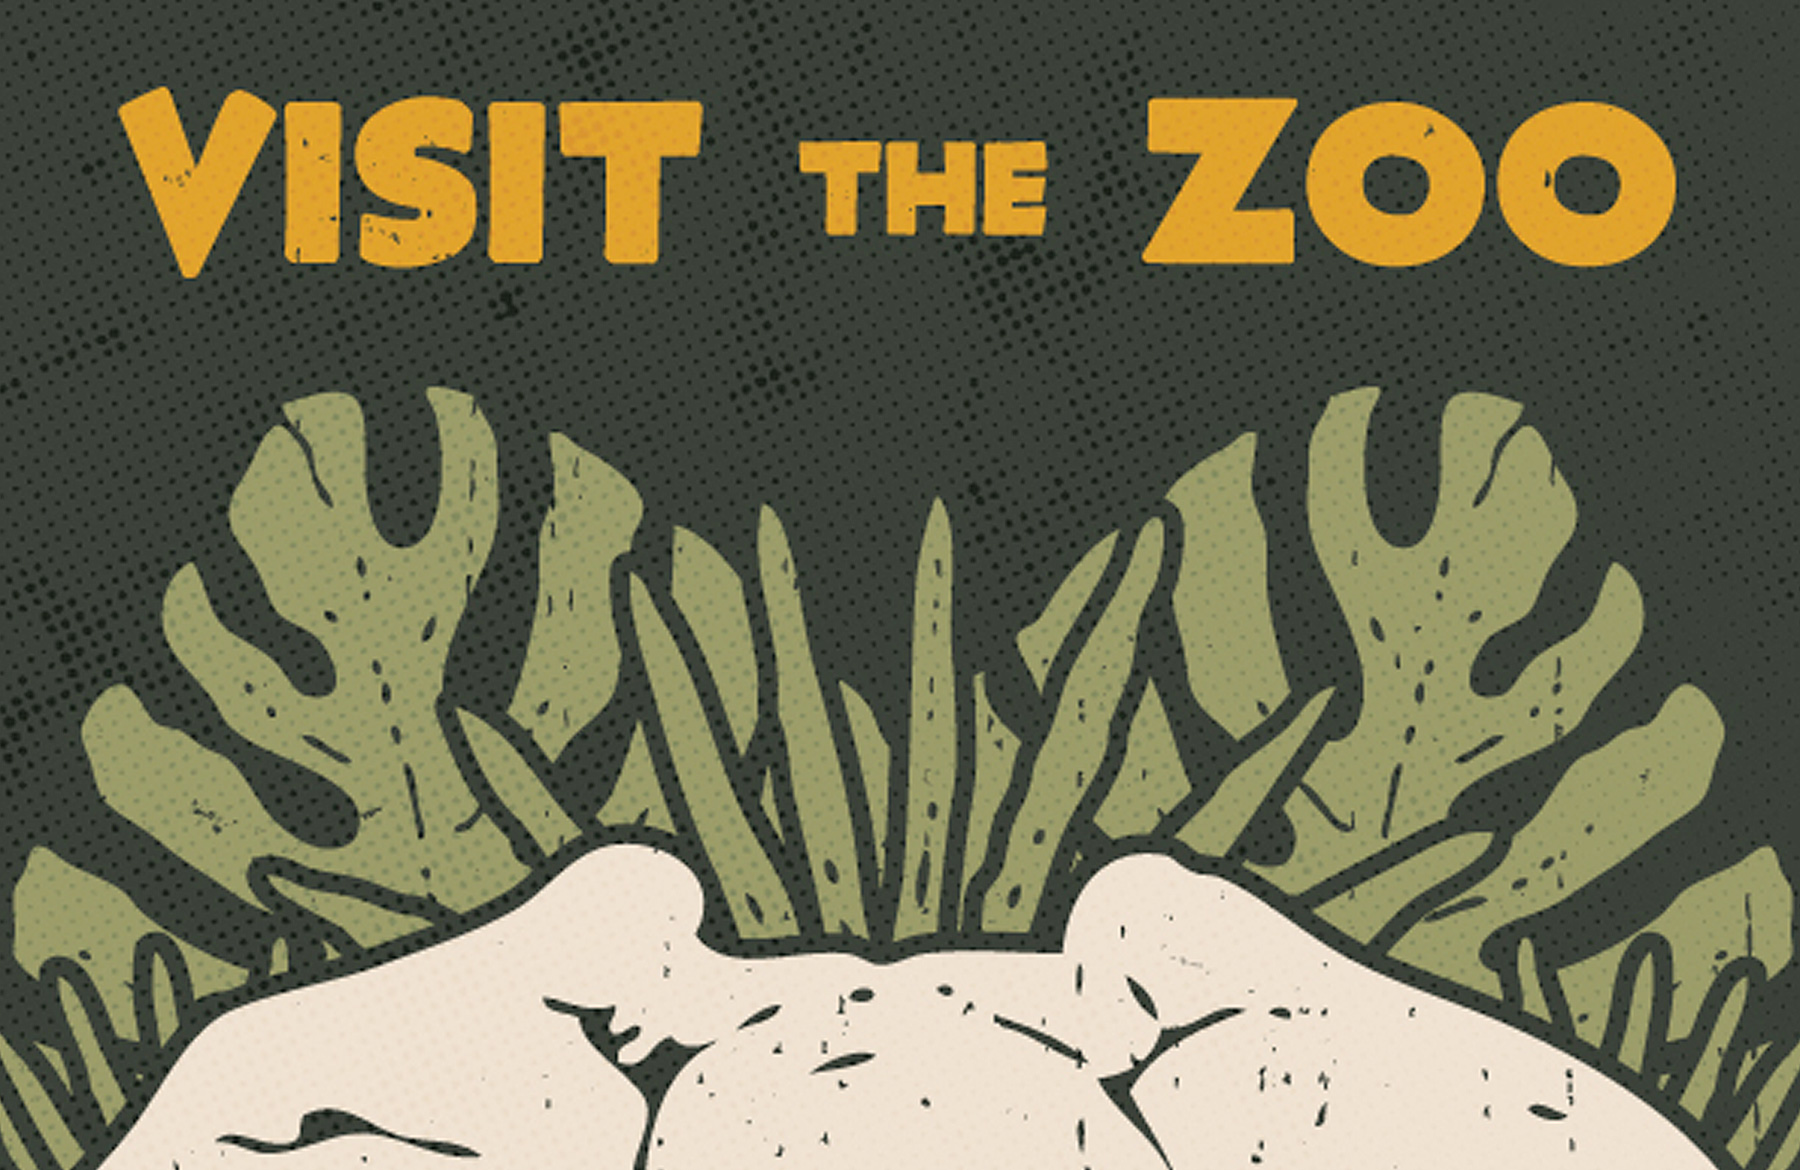 Zoo poster design - Design A Creative Vector Based Zoo Poster